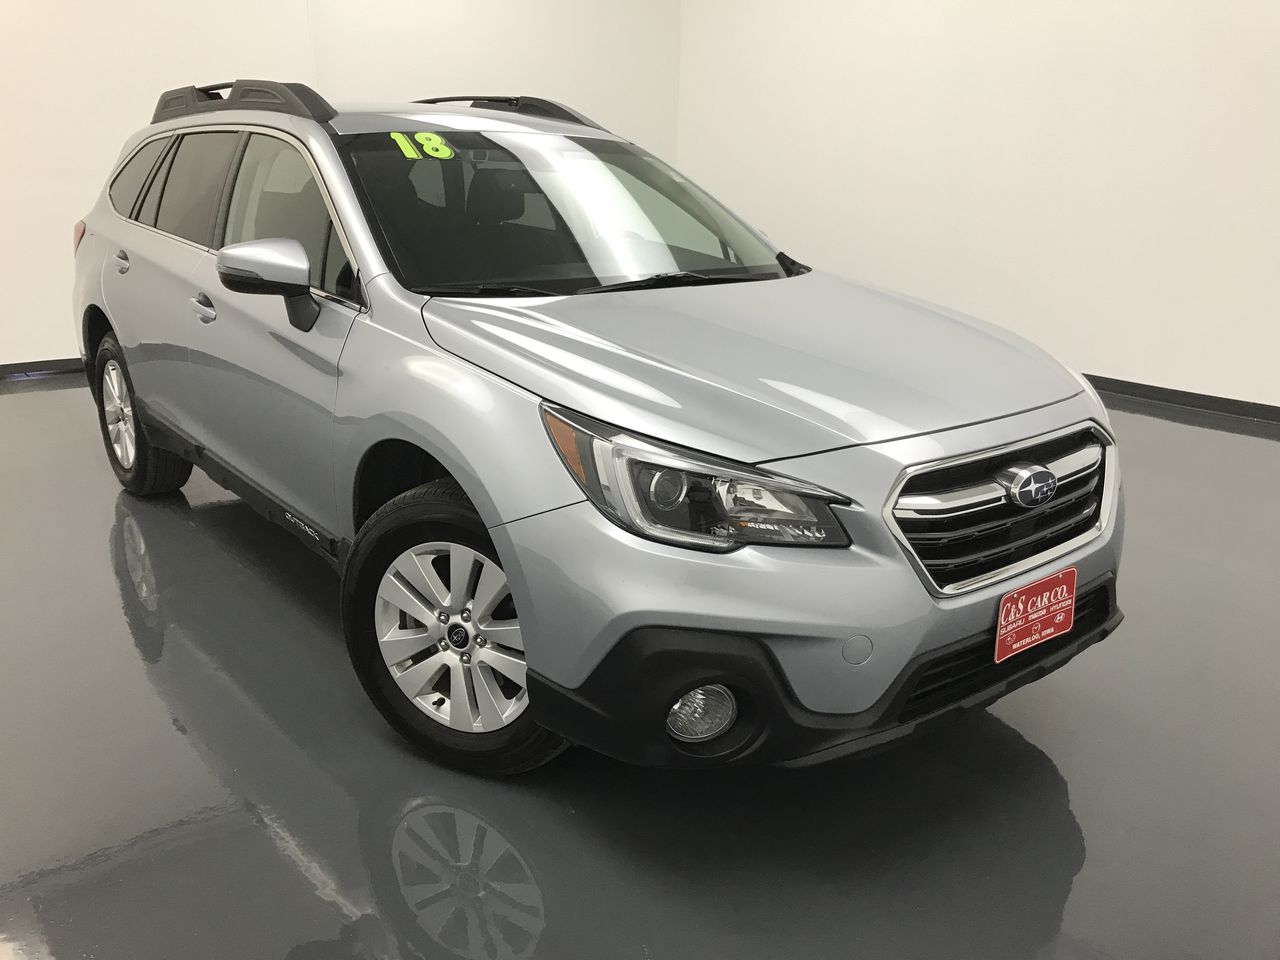 2018 Subaru Outback 2.5i Premium w/Eyesight  - SB6290  - C & S Car Company